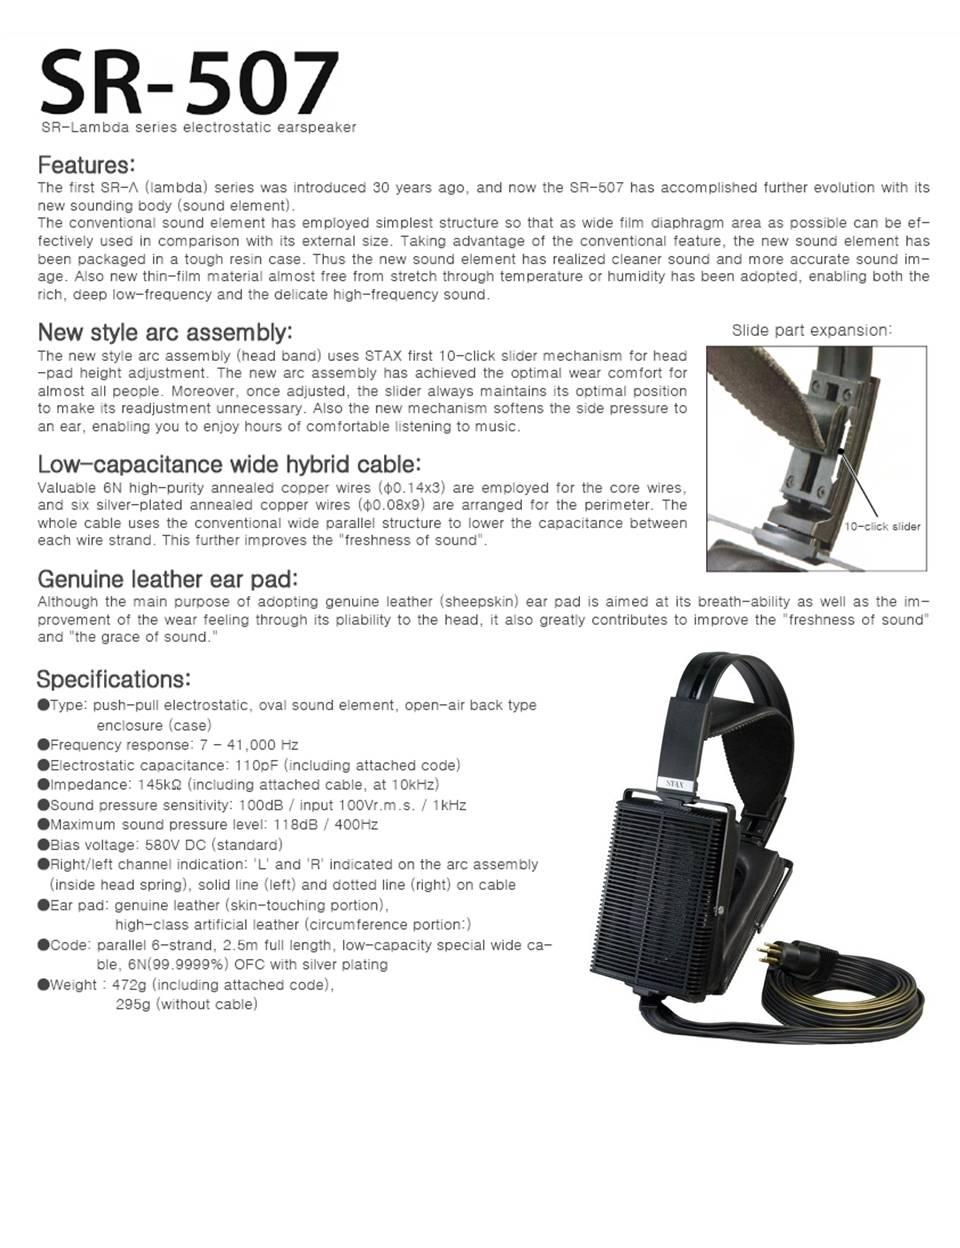 Stax SR507 product brochure.